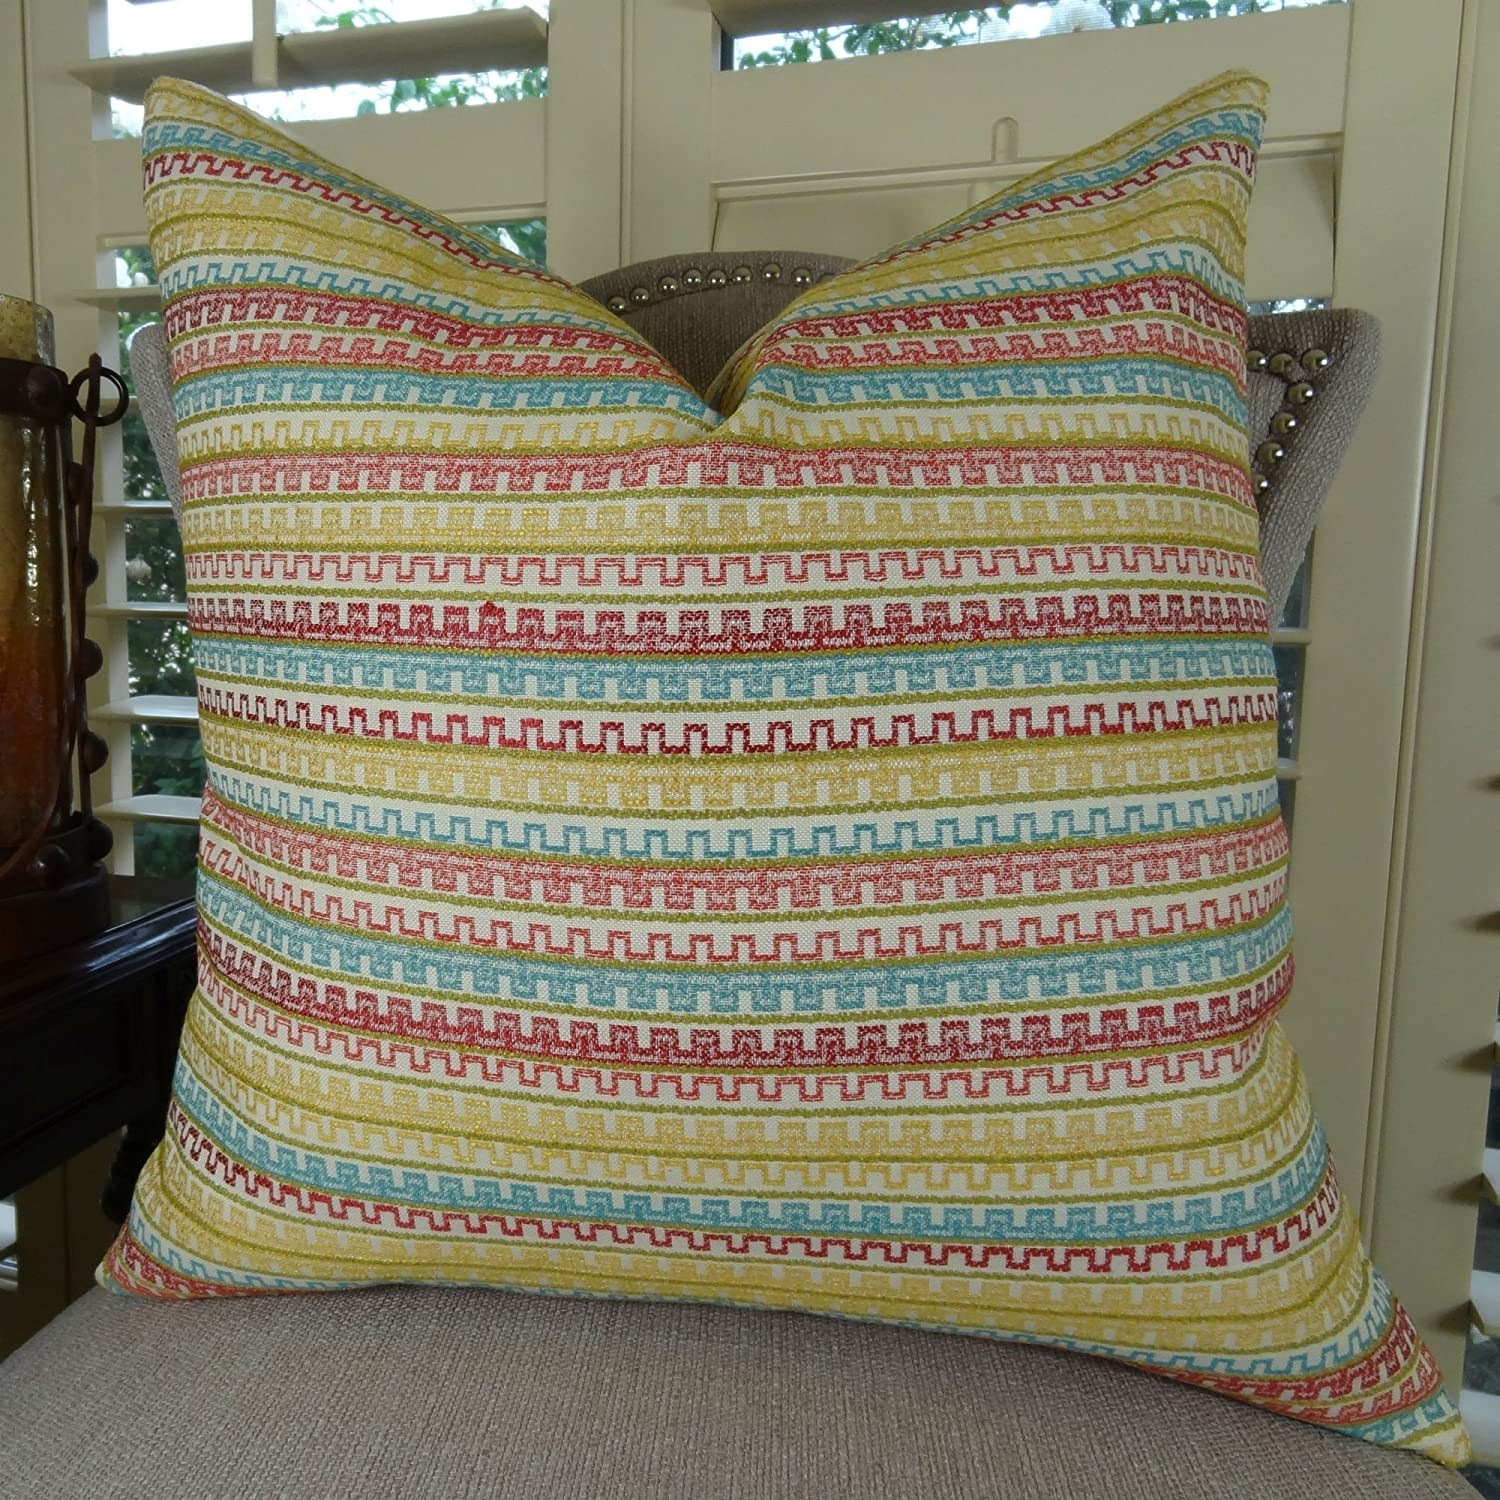 Q .Double Sided 22\ Thomas Collection Handmade in USA Luxury Toss Pillow for Couch Sofa Bed, Made in USA Pillow Insert & Cover, Pink Aqua Yellow Stripe Pillow  11343